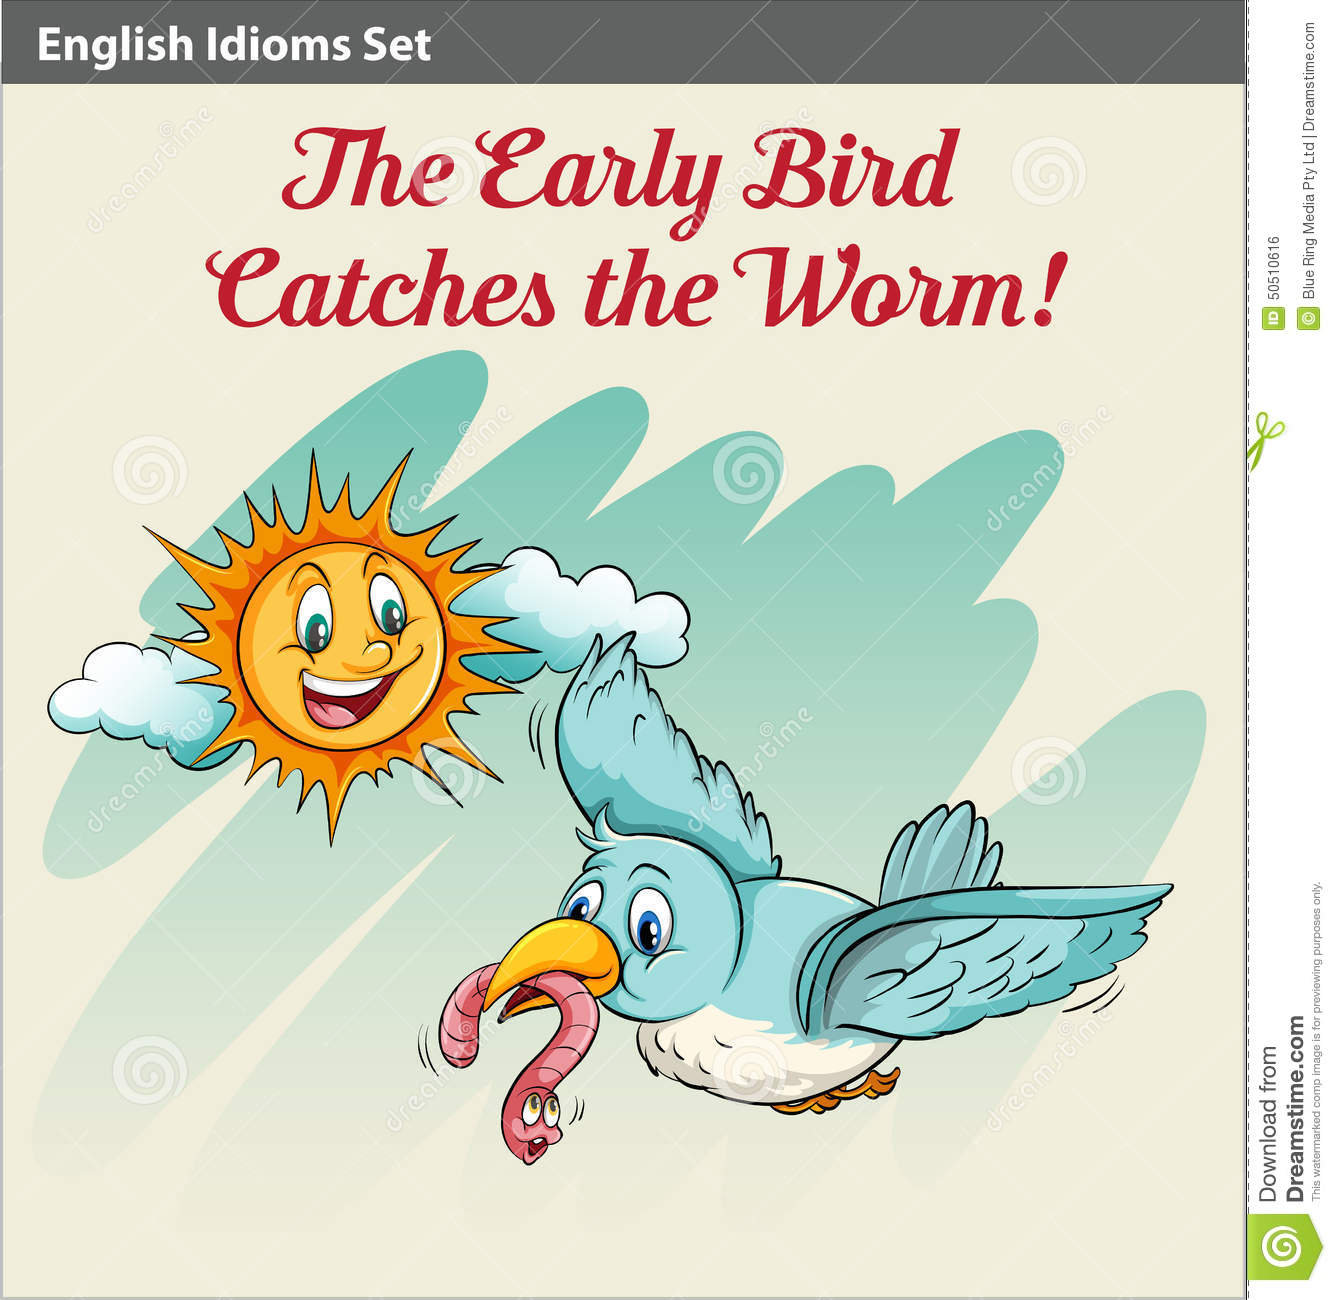 the early bird catches the worm essay The early bird catches the worm essay self-governing power, essay outline examples which source of public did pretend that he attempting to state of life could be.